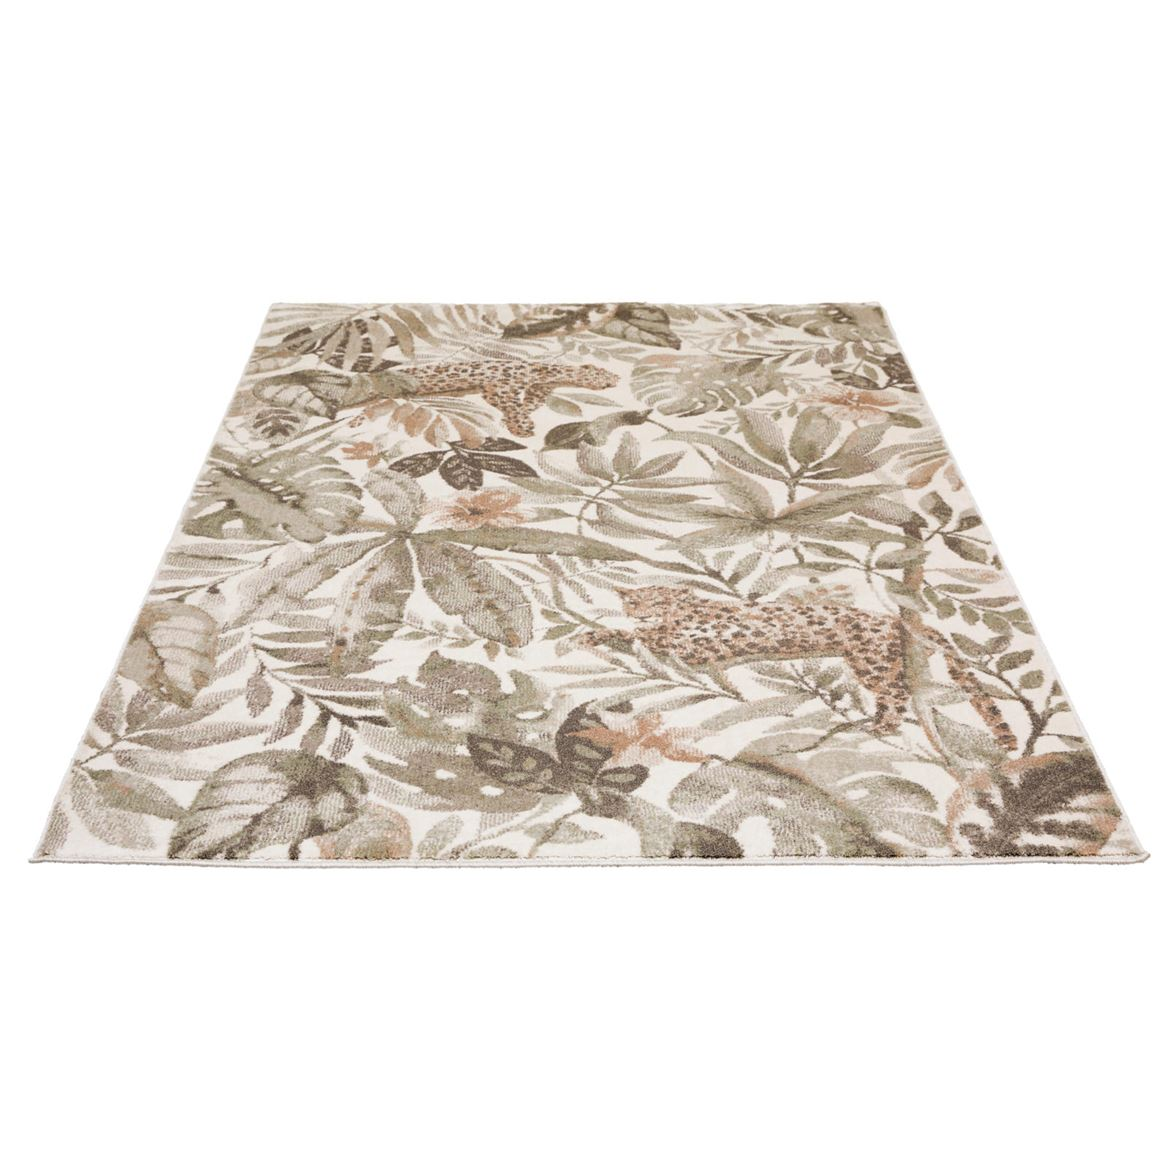 PANTHERA Tapis multicolore Larg. 160 x Long. 230 cm_panthera-tapis-multicolore-larg--160-x-long--230-cm